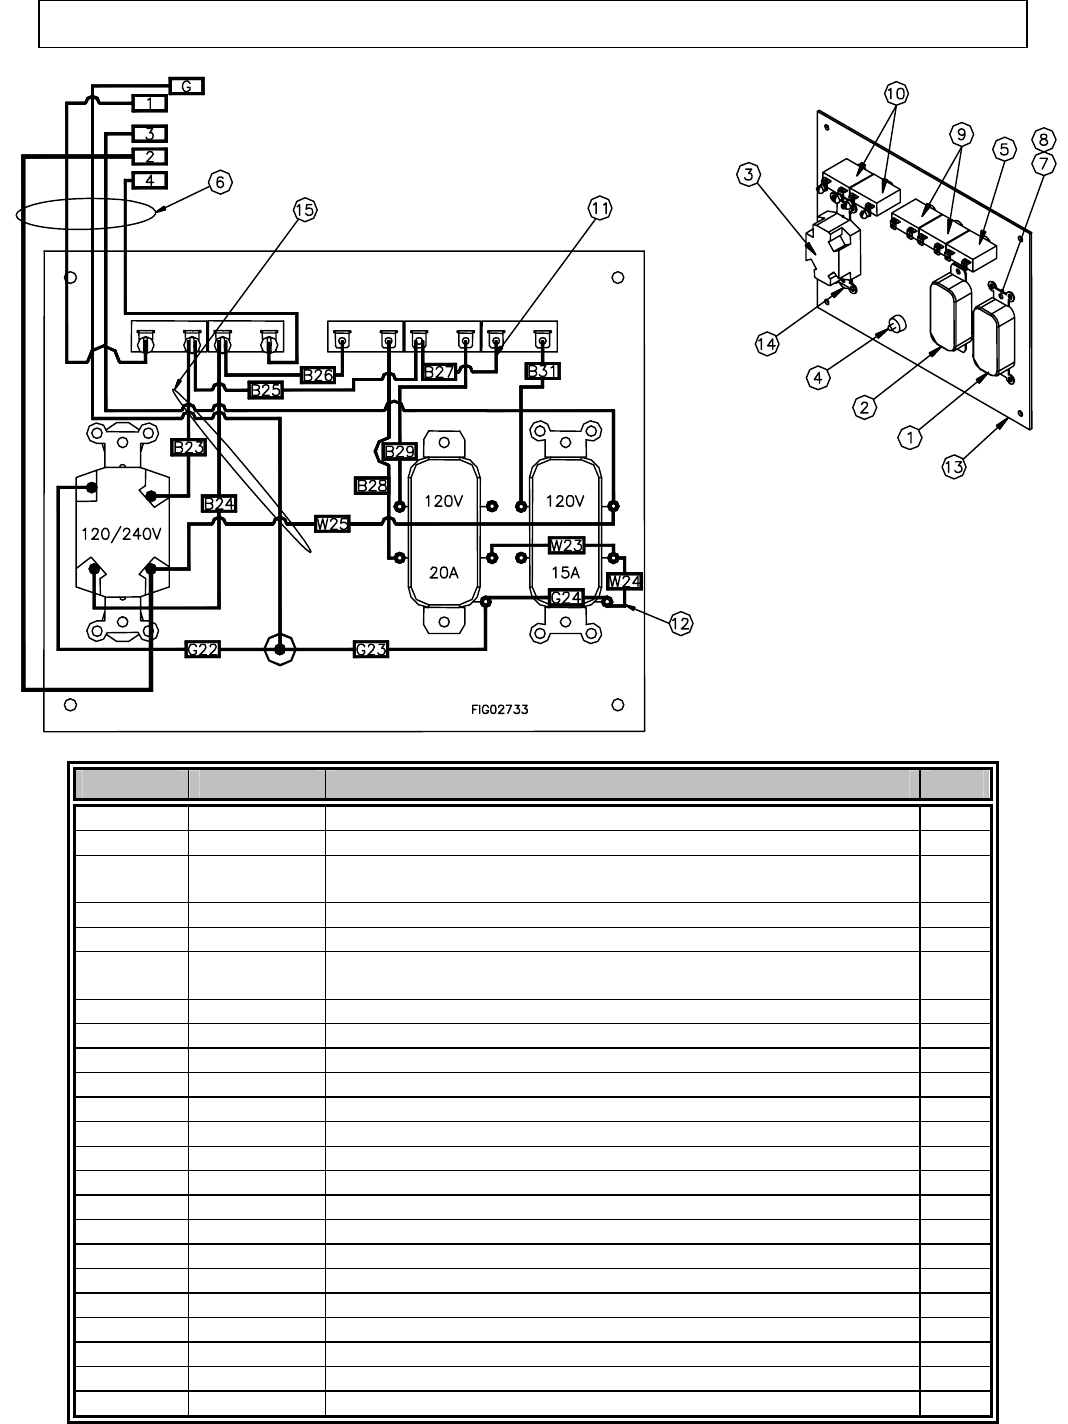 6a2ef387 32e8 b494 d541 95a46ece1bd2 bg28 page 40 of north star portable generator m165957k user guide northstar generator wiring diagram at readyjetset.co